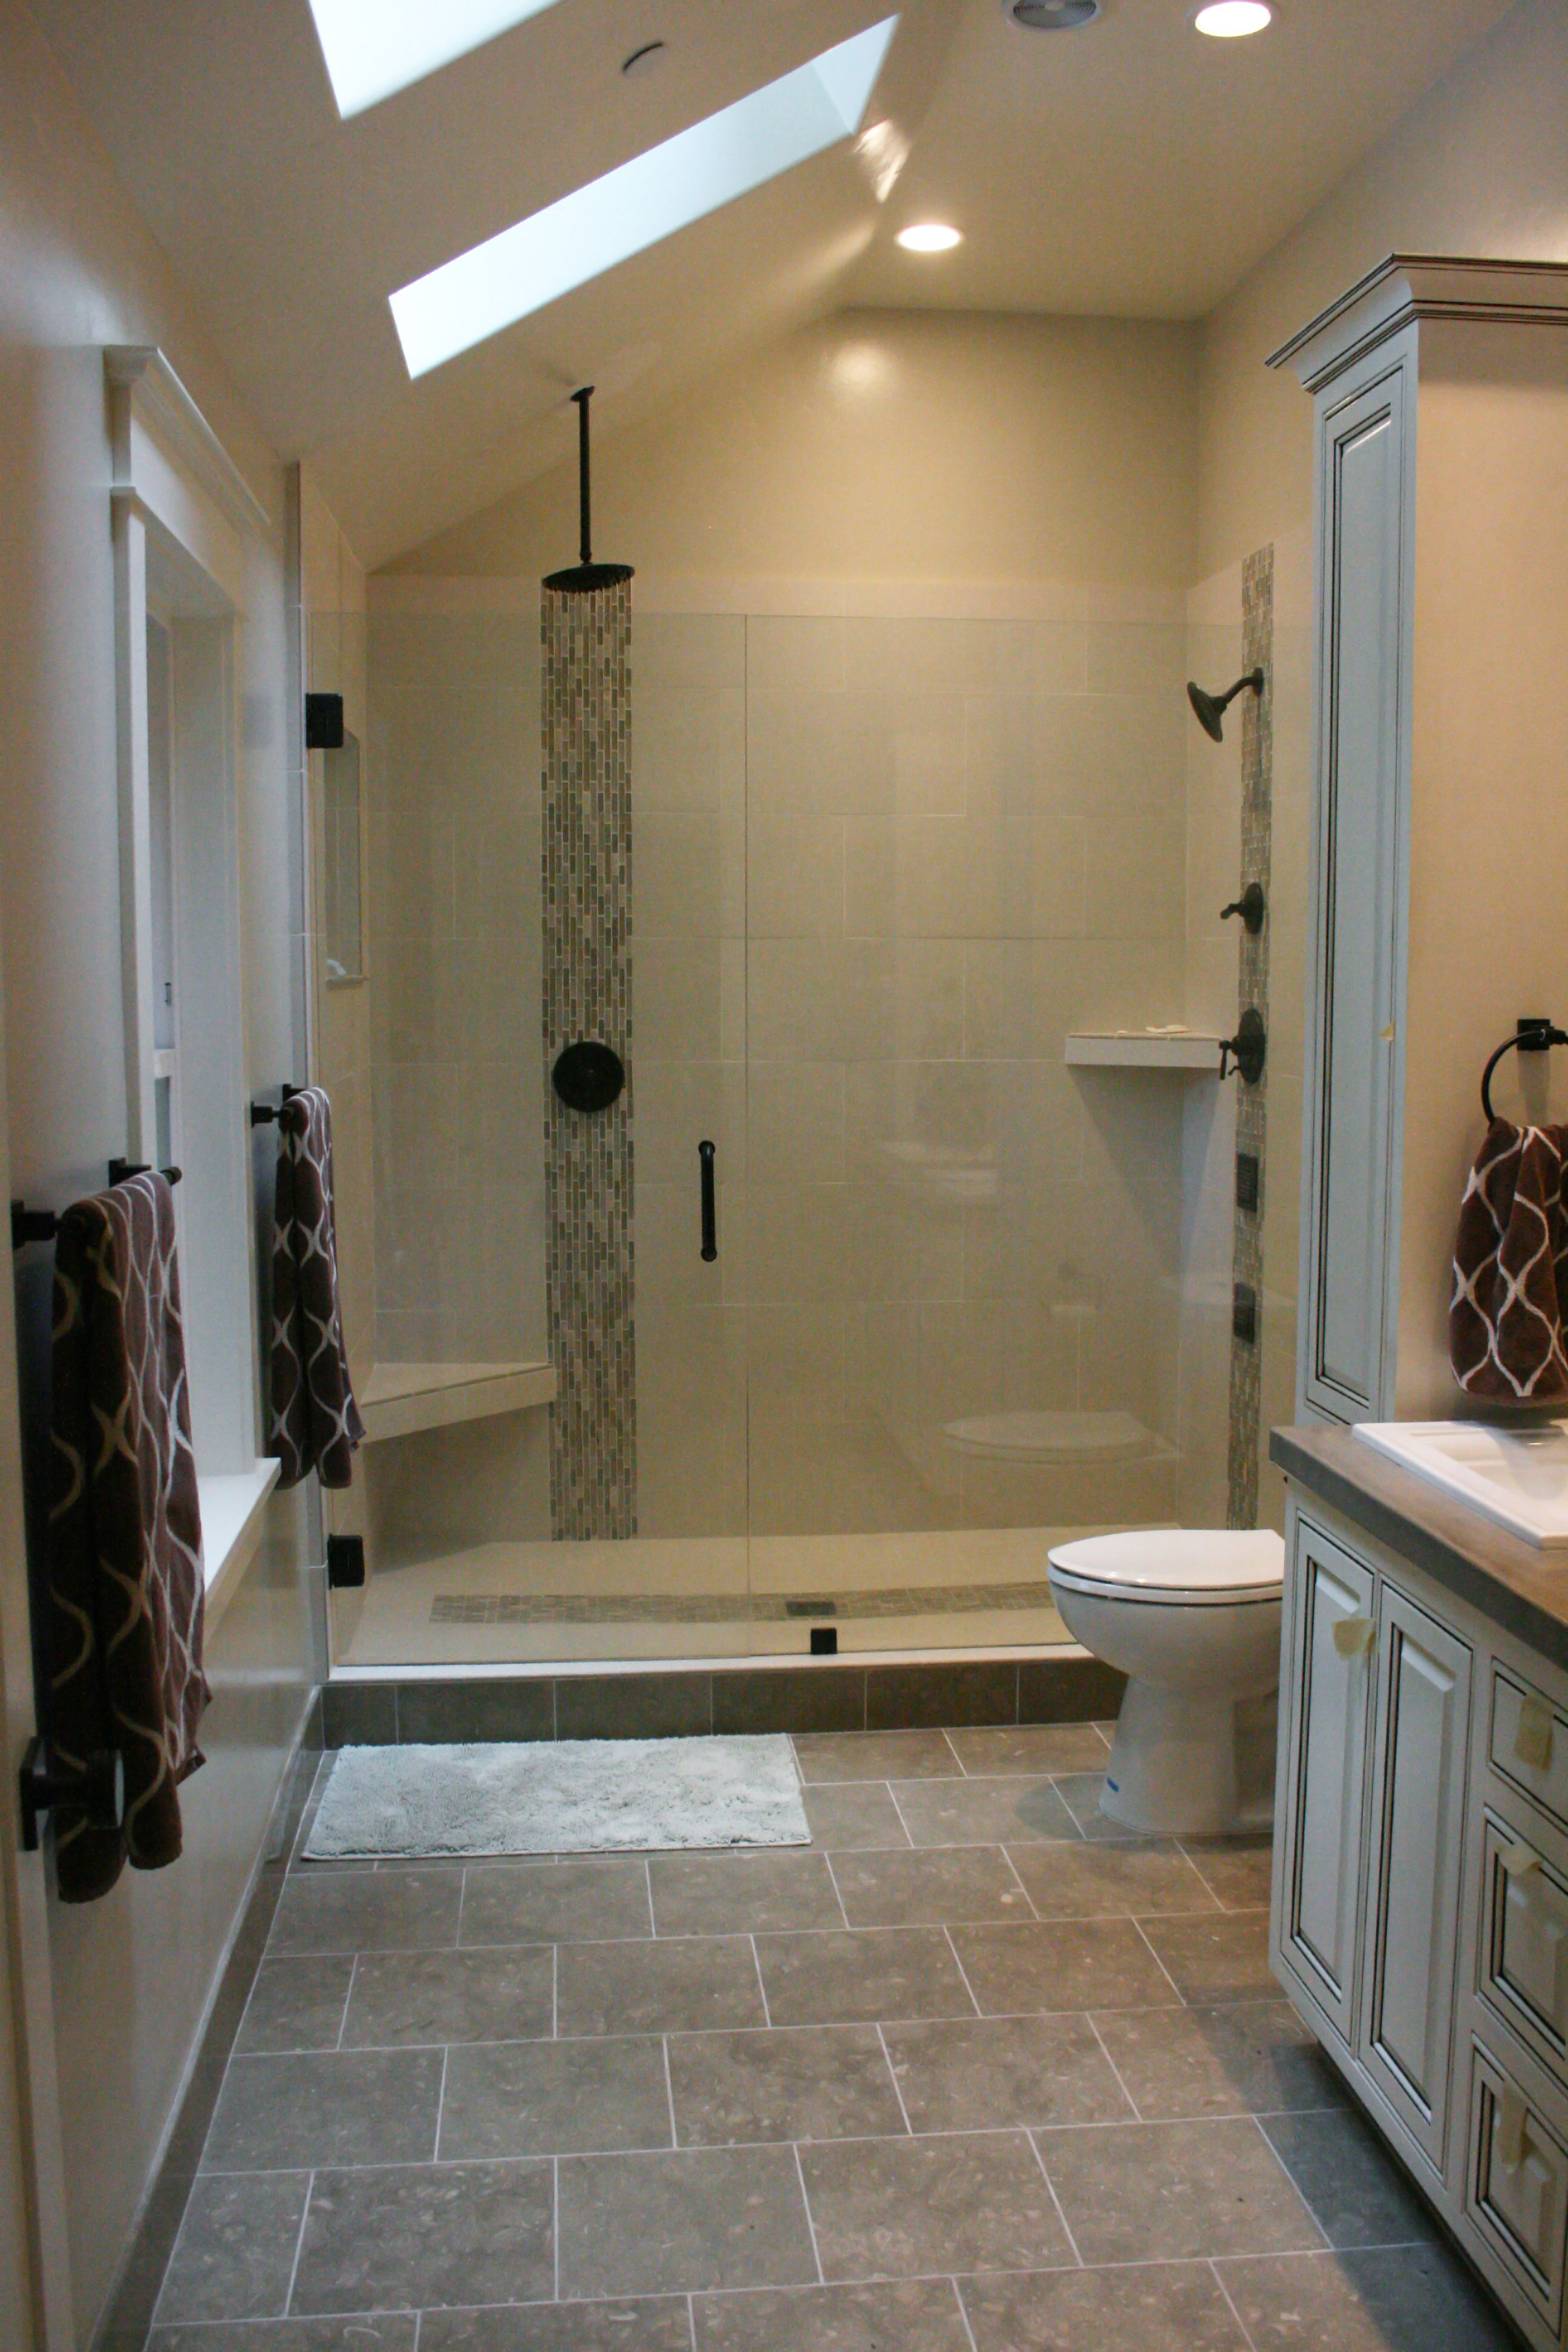 Floor tile layed staggered matching shower tiles and bathroom floor tile layed staggered matching shower tiles and bathroom flooring pinterest shower doors shower tiles and bathroom floor tiles dailygadgetfo Images